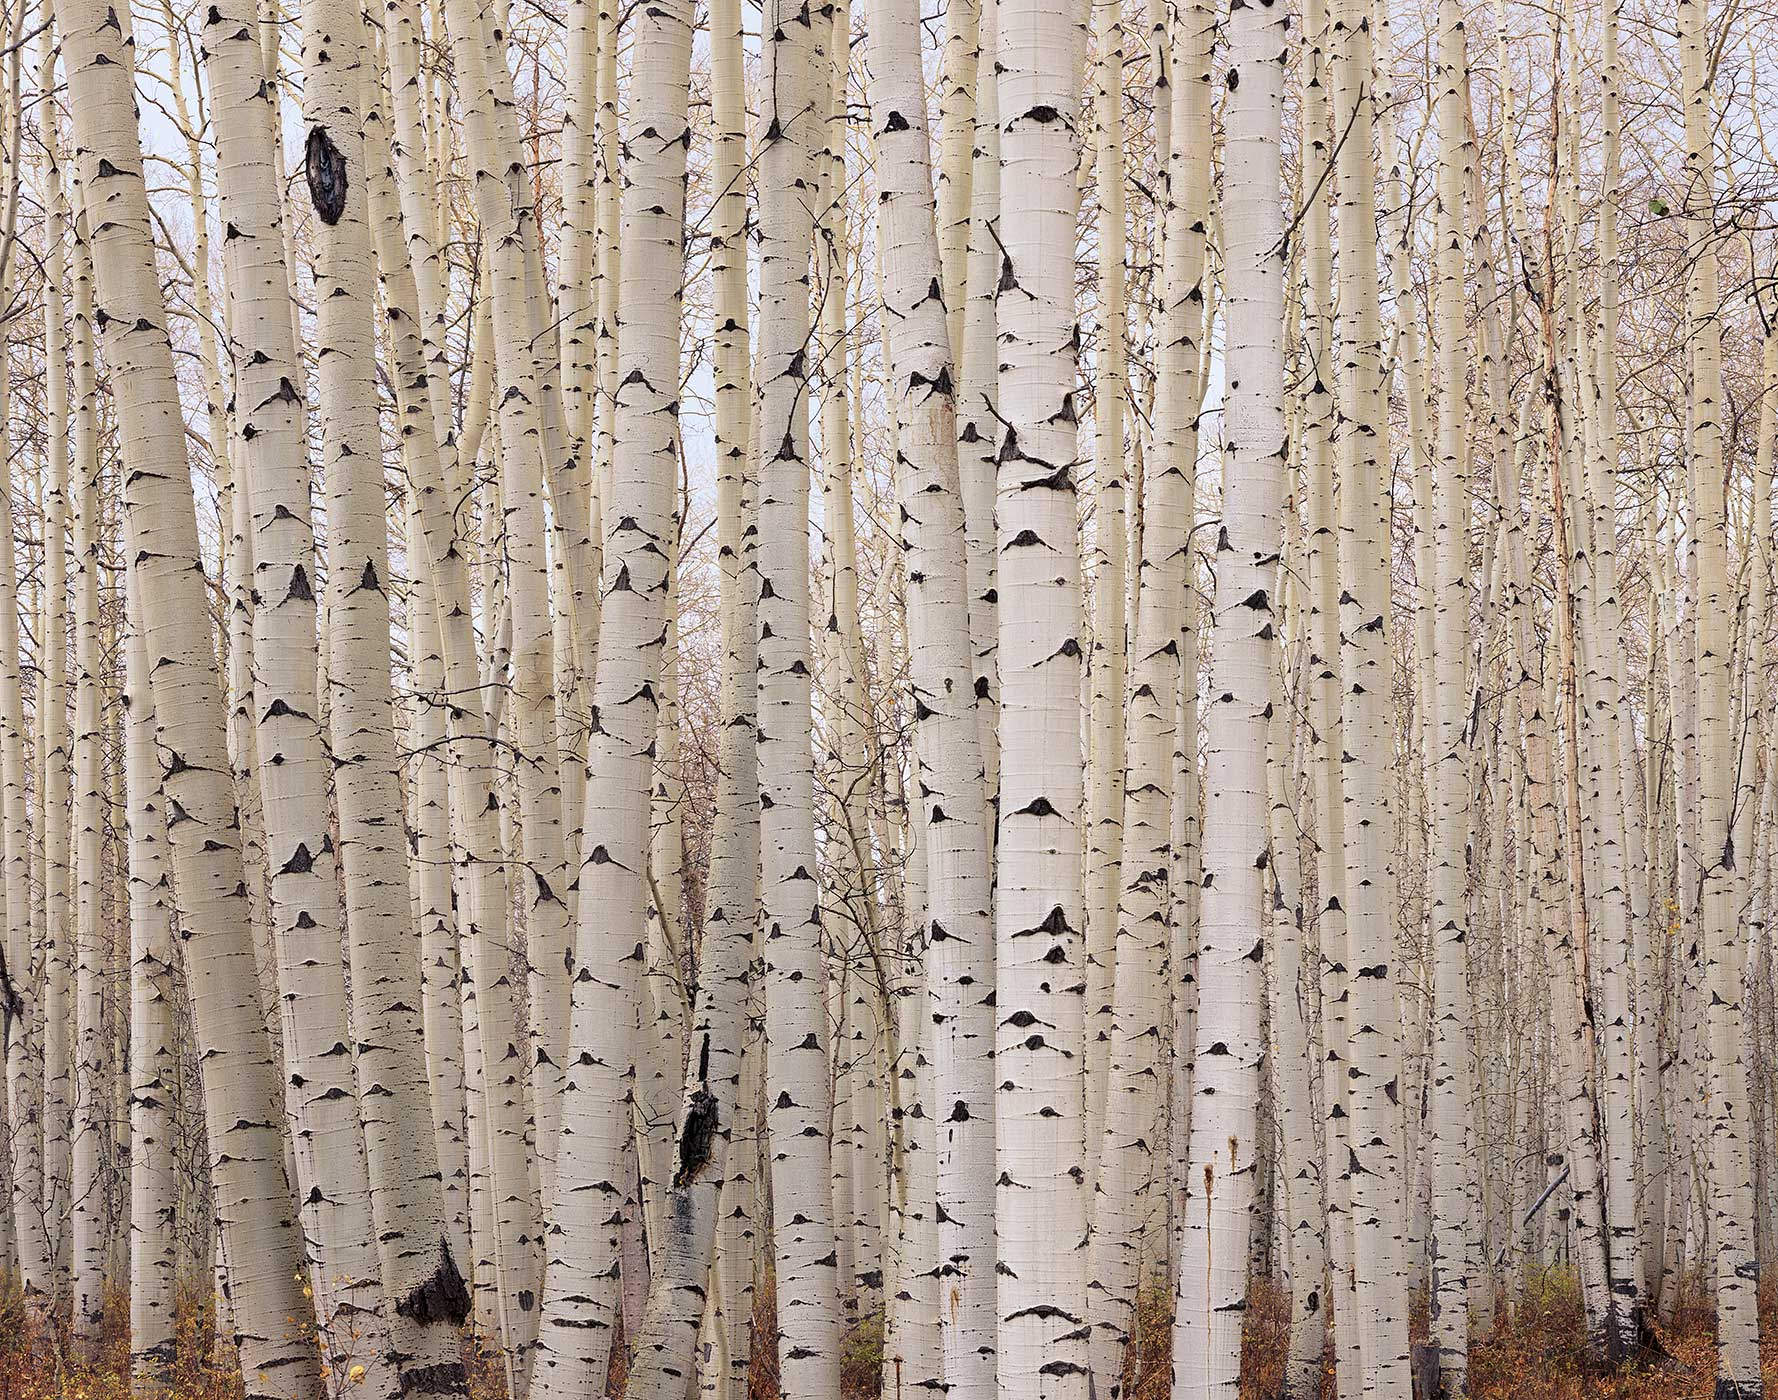 705 Aspens After the Fall, San Juan National Forest, Colorado